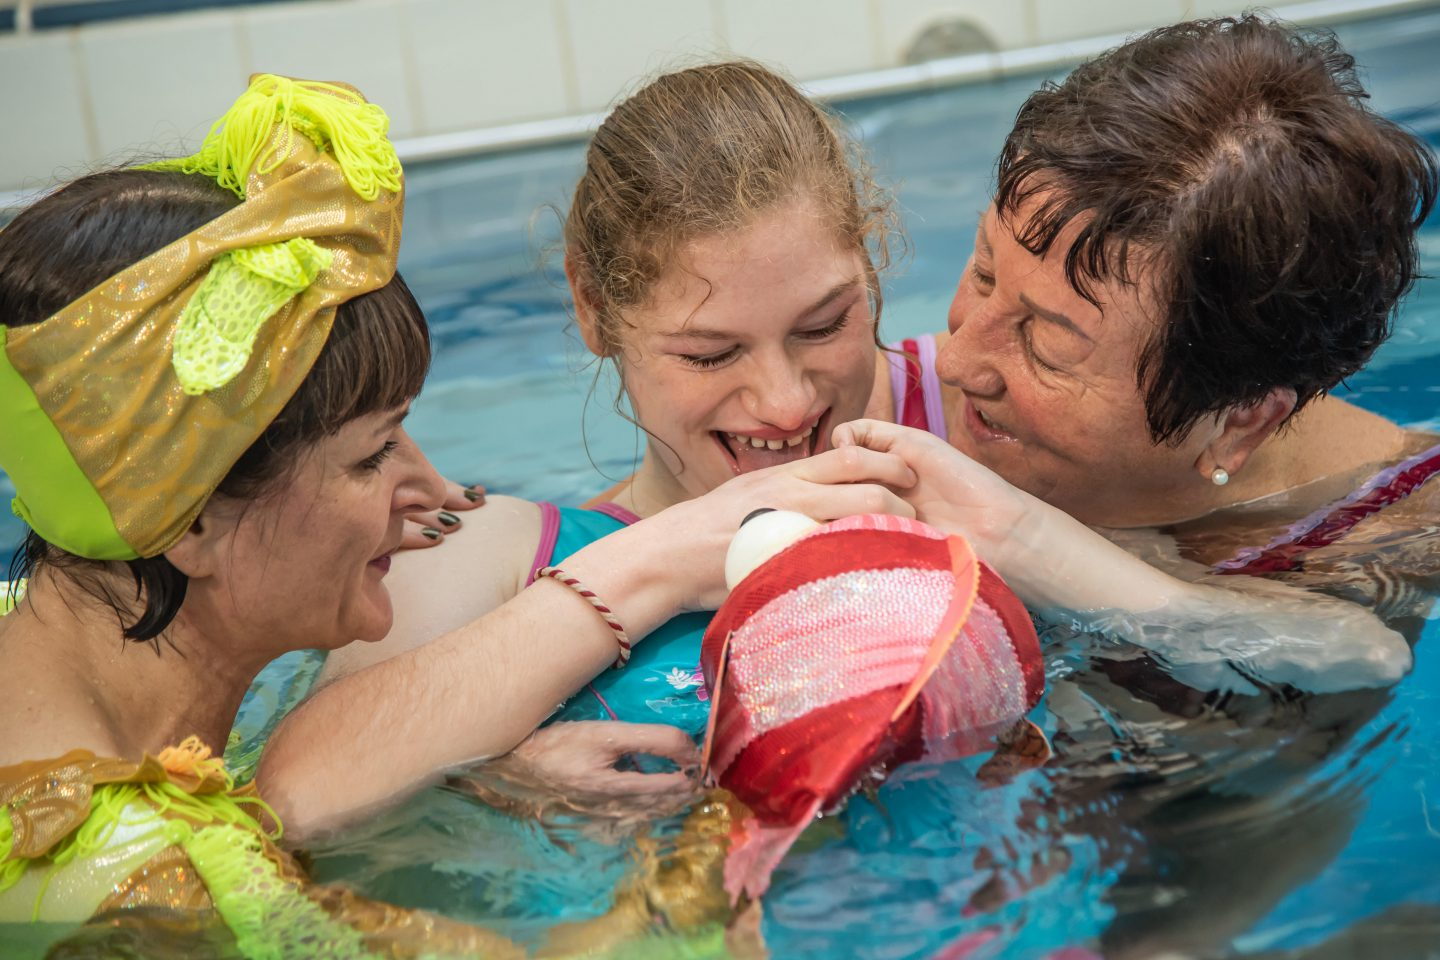 a young audience member smiles at the puppet fish that a performer in green is showing her. the adult supporting the audience member is looking at her and smiling. they are all in a swimming pool